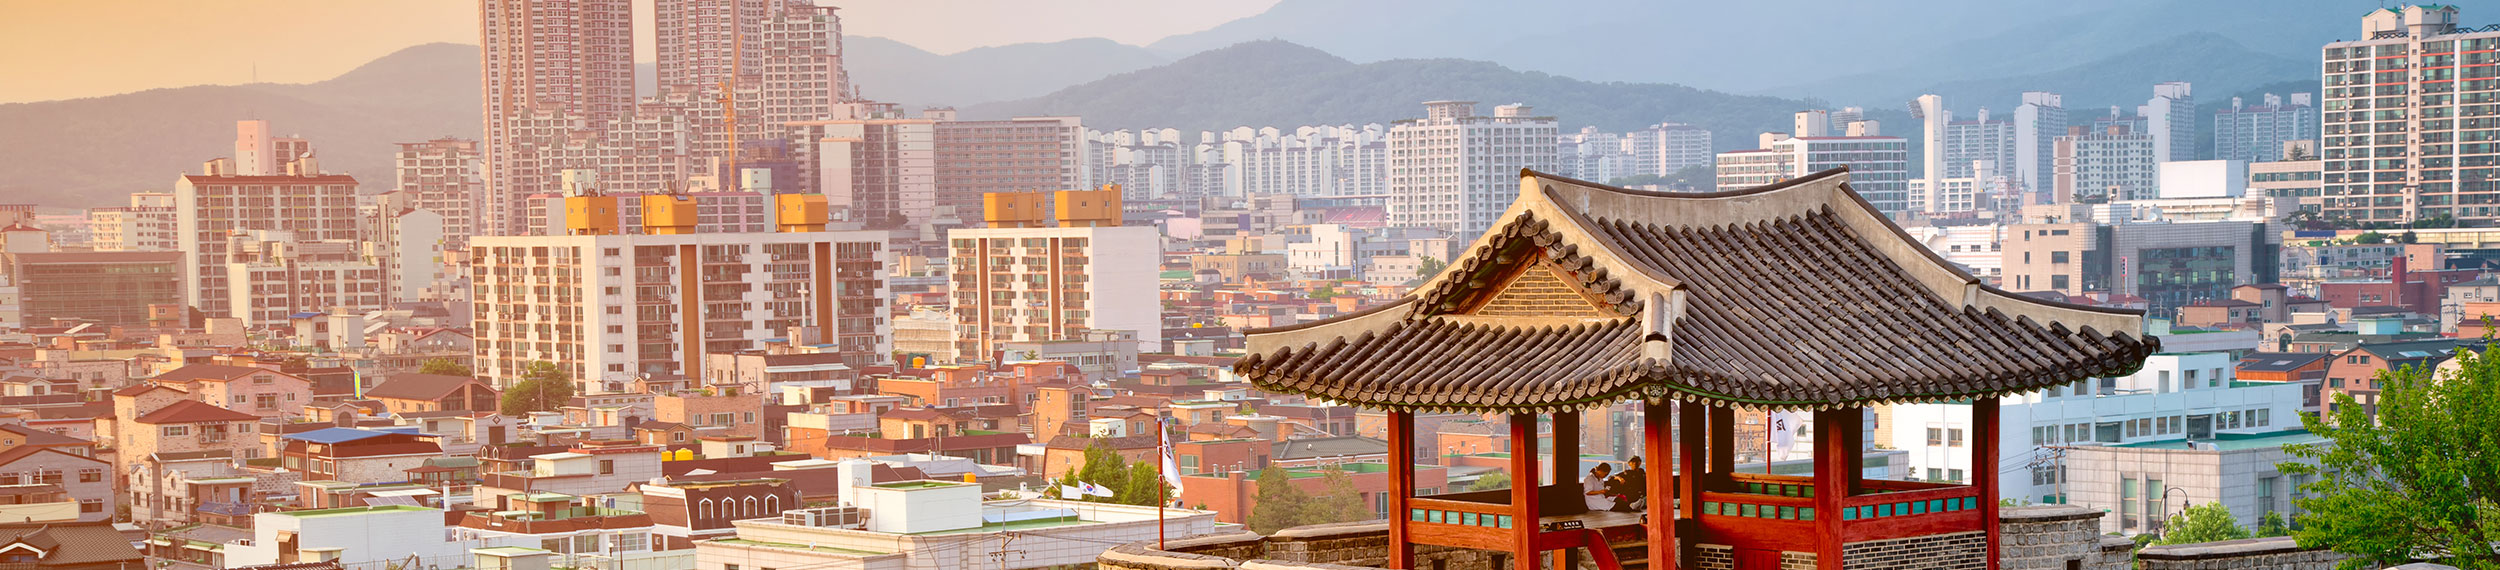 View of Suwon Hwaseong Fortress that surrounds the downtown area of Suwon City in Korea.